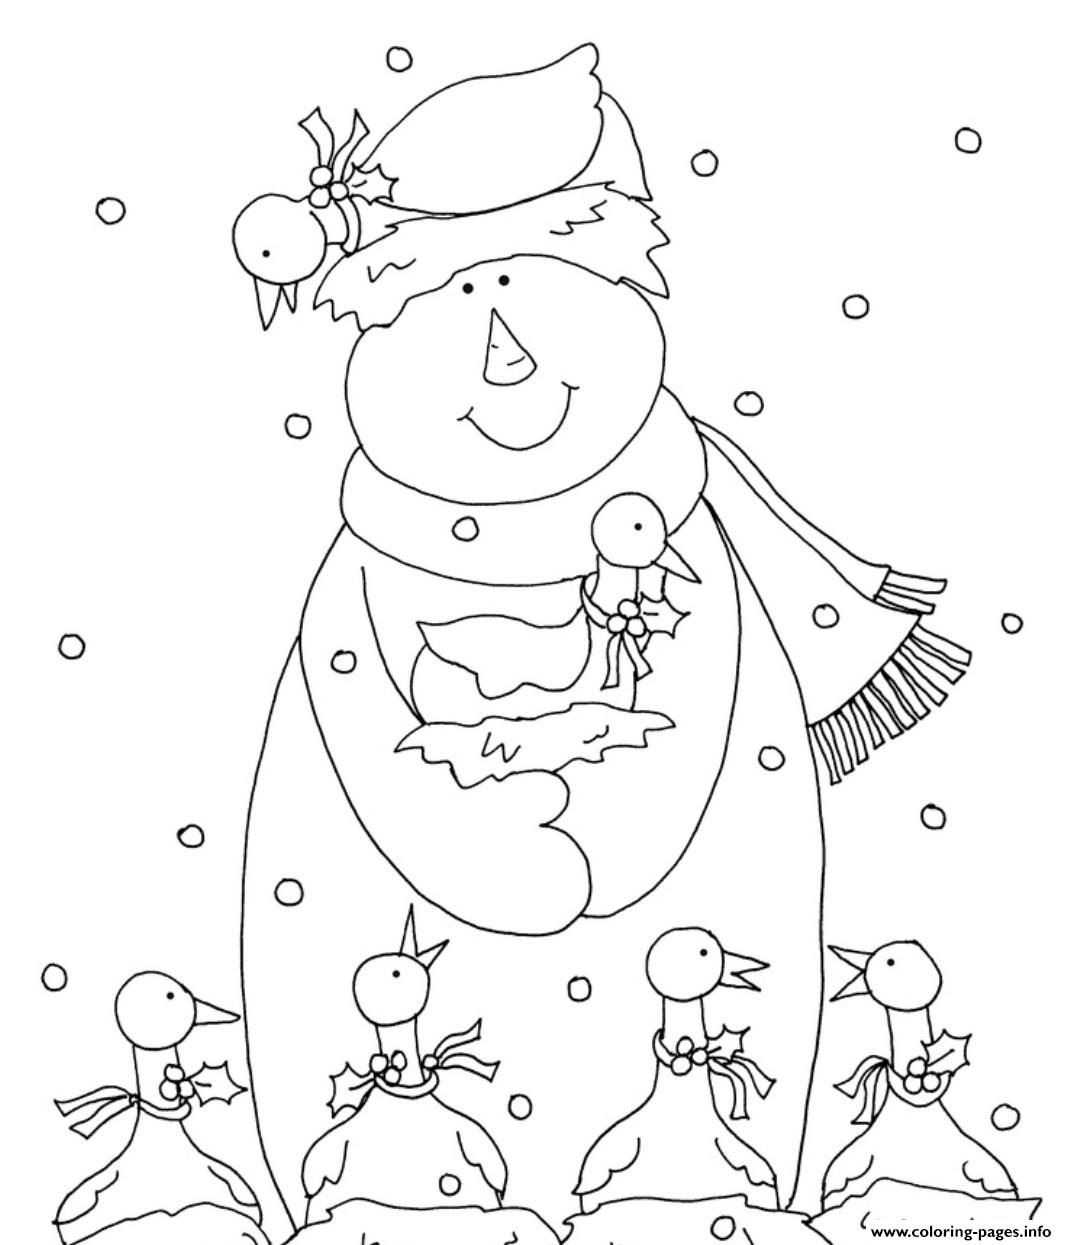 Snowman S Christmasd325 Coloring Pages Printable